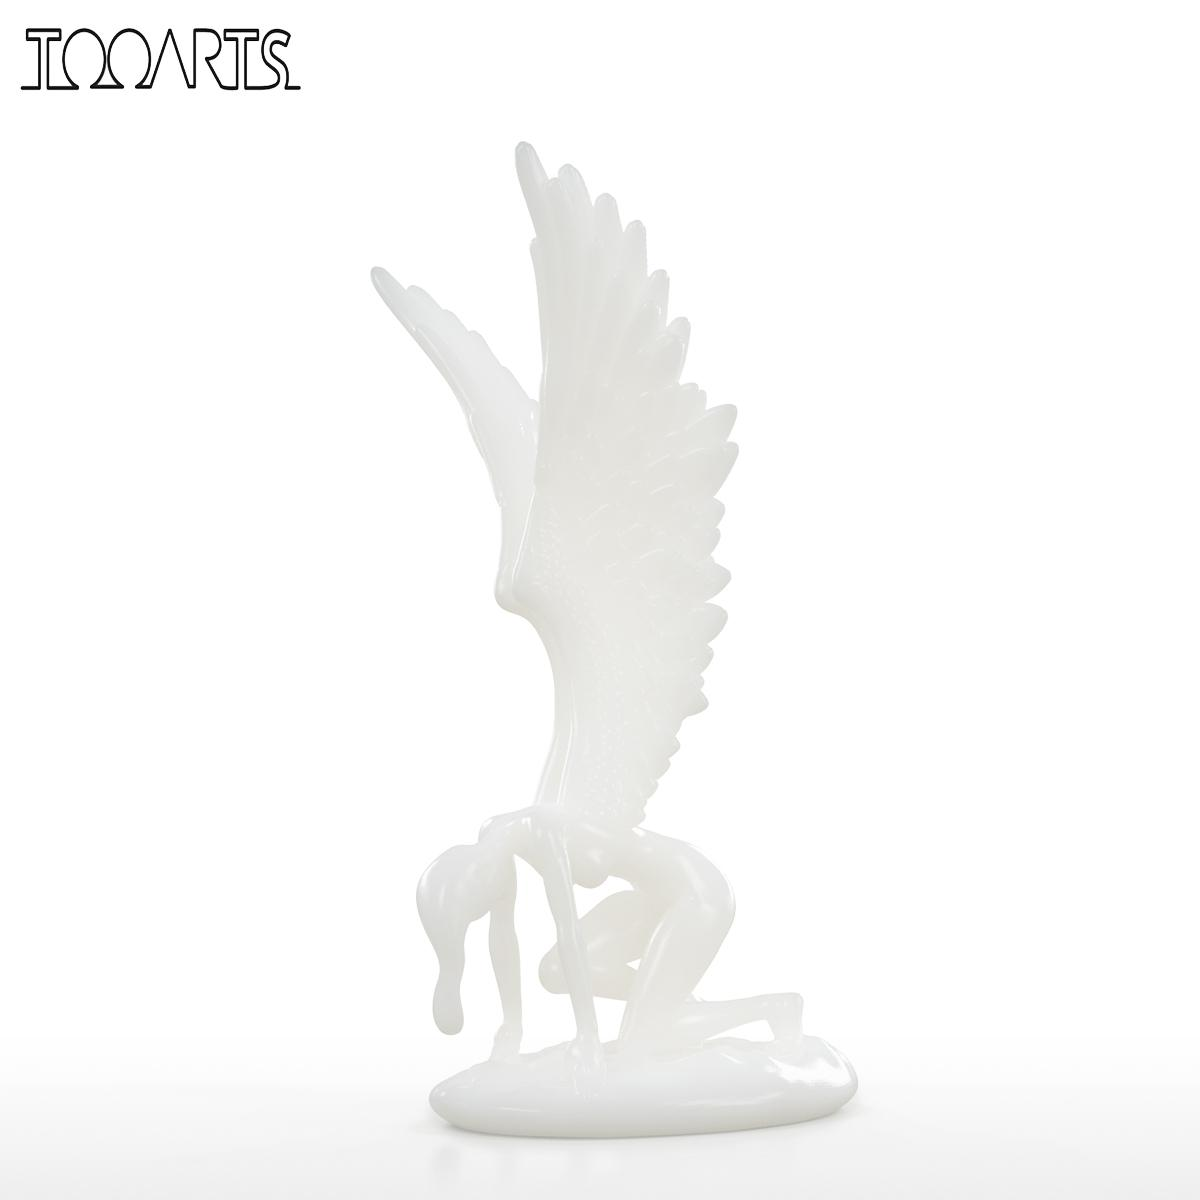 Us 72 78 40 Off Tooarts Angel With Wings Figurine 3d Printed Sculpture For Home Decor West Myth Art Decor Abstract Angel Statue Art Sculpture In